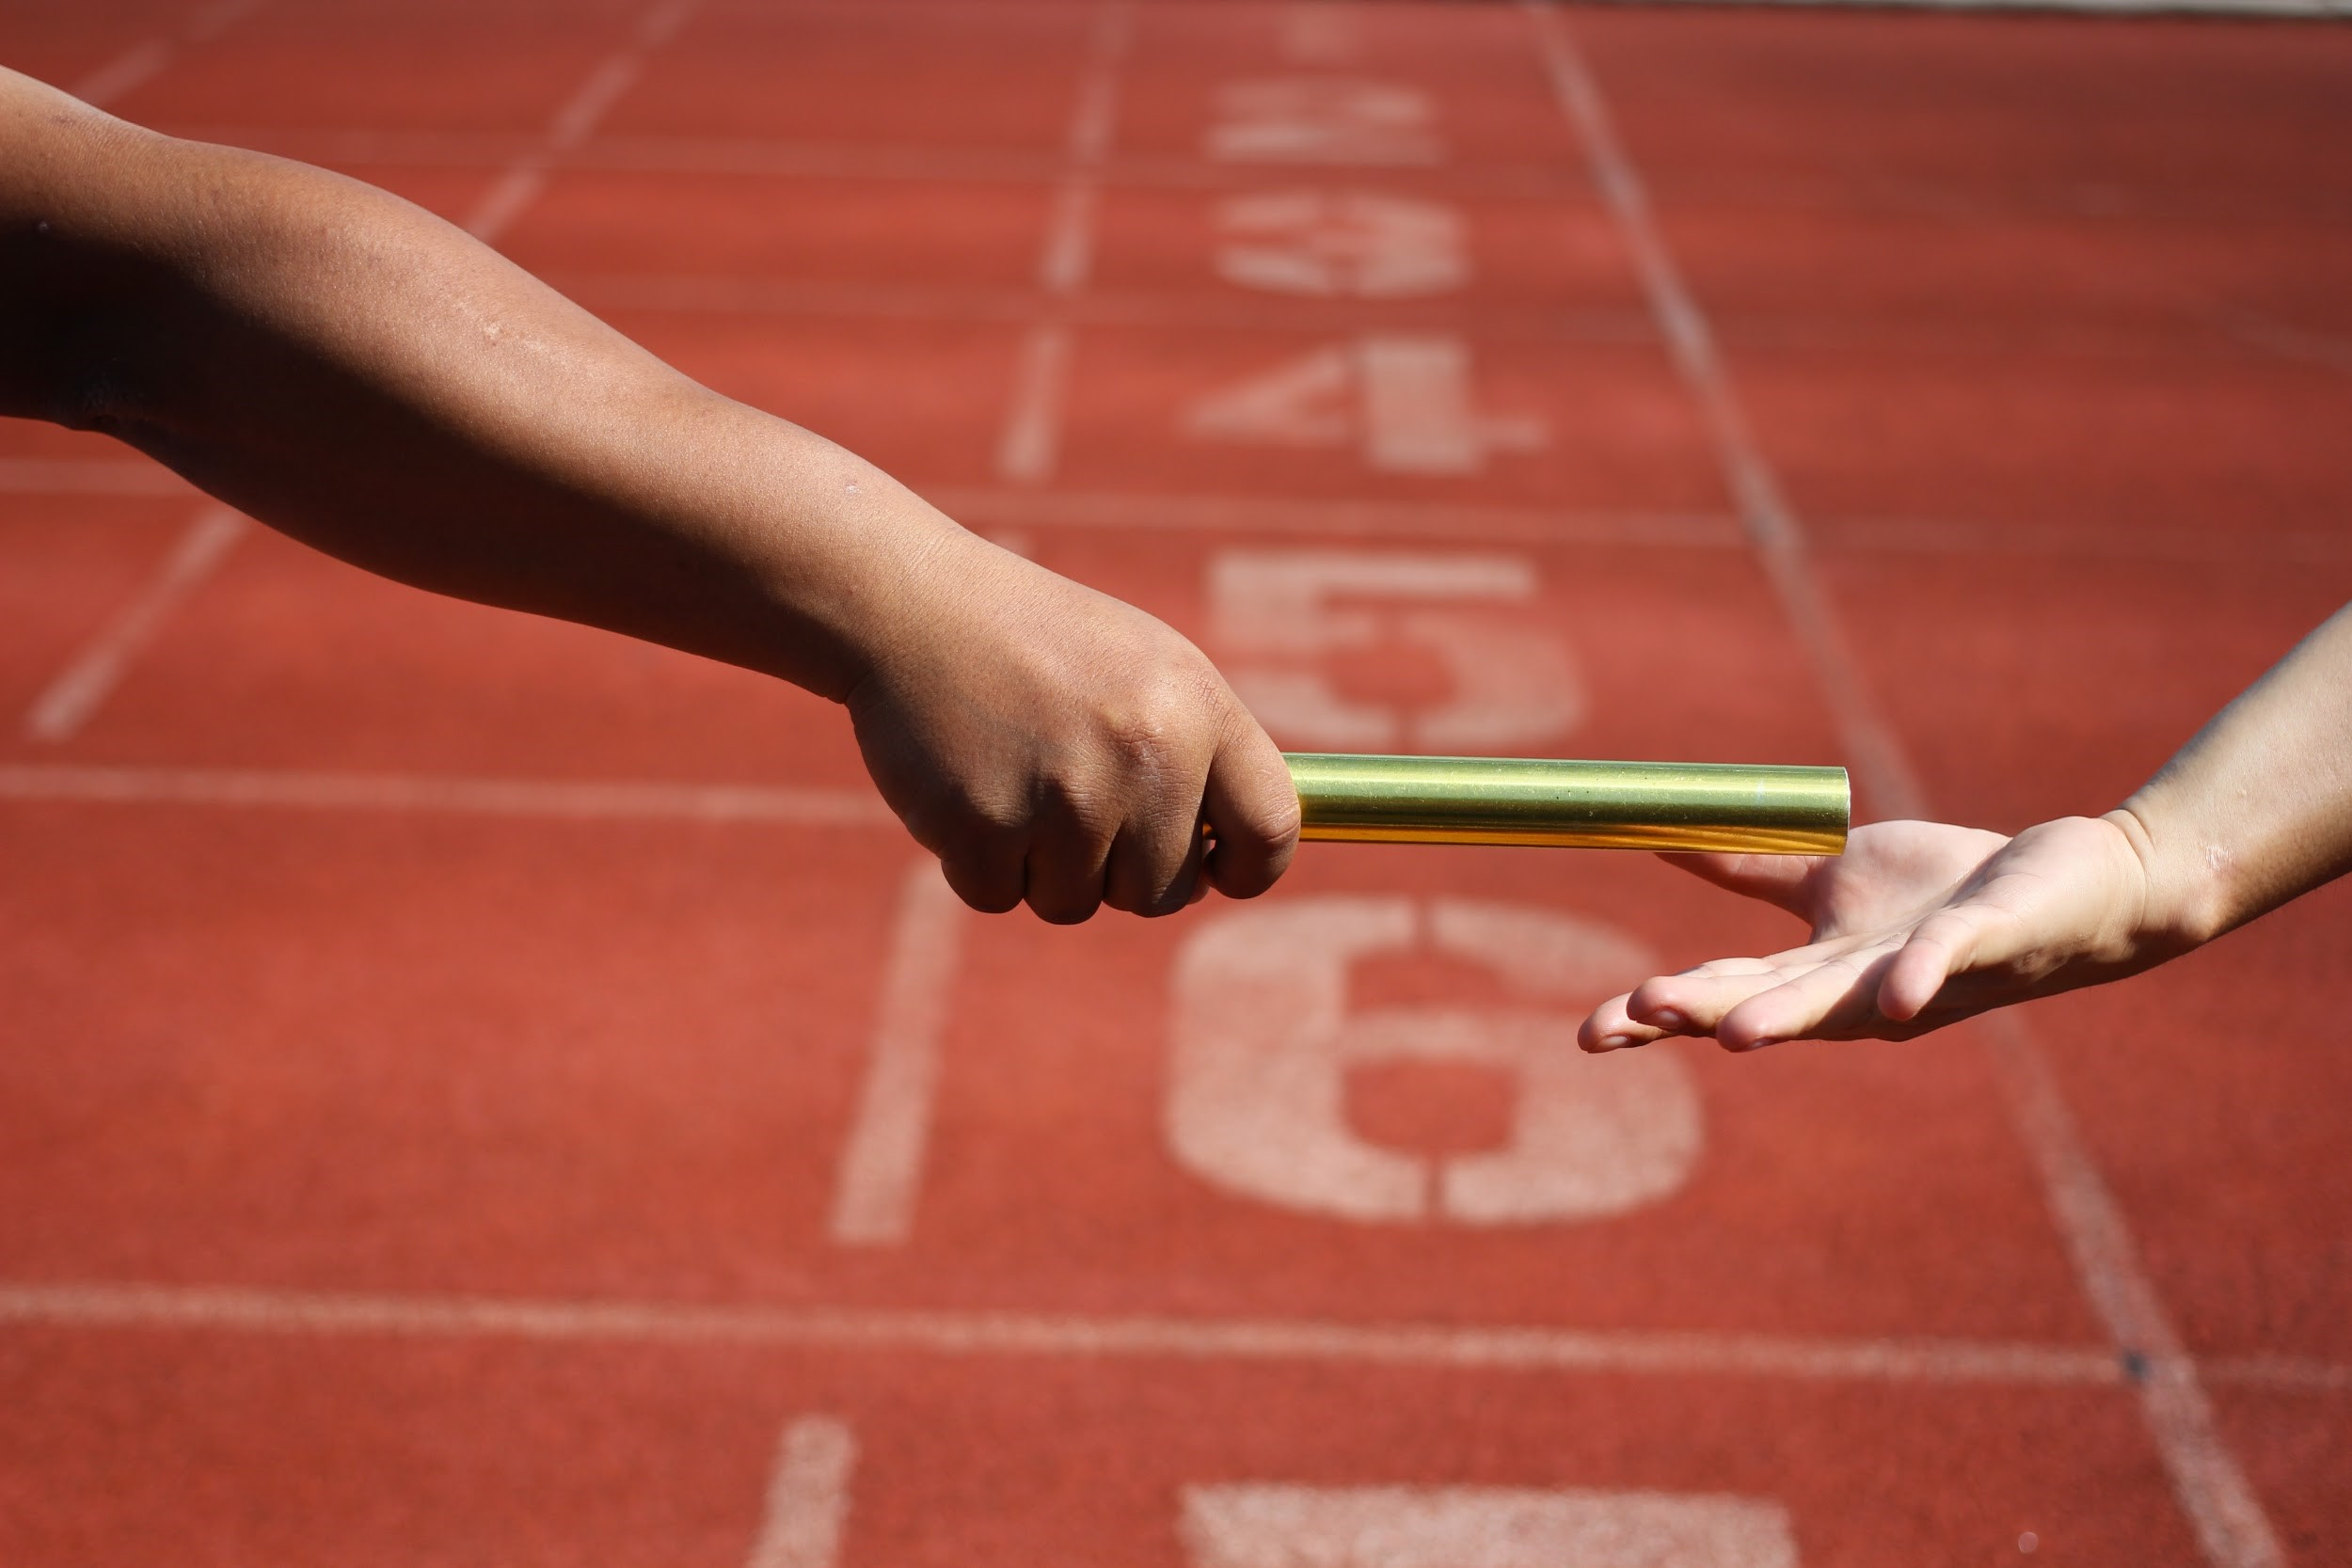 Qualifying Leads for your Sales Team: A Marketer's Approach